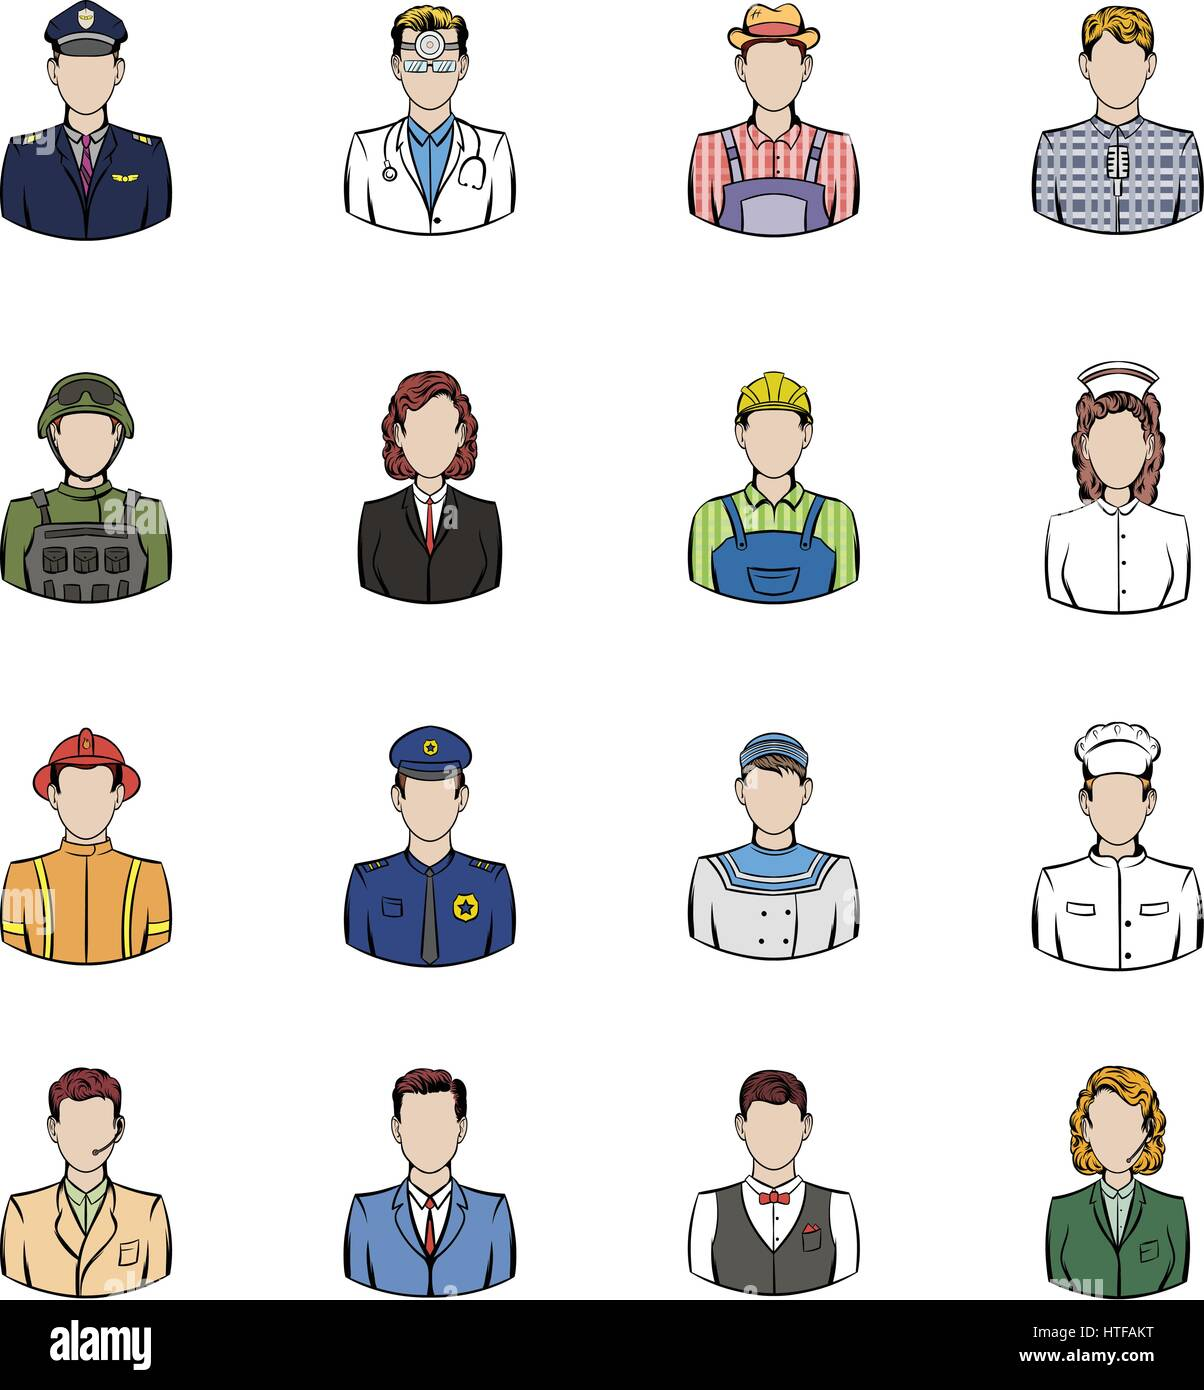 Profession icons set in cartoon style isolated on white background vector illustration - Stock Vector